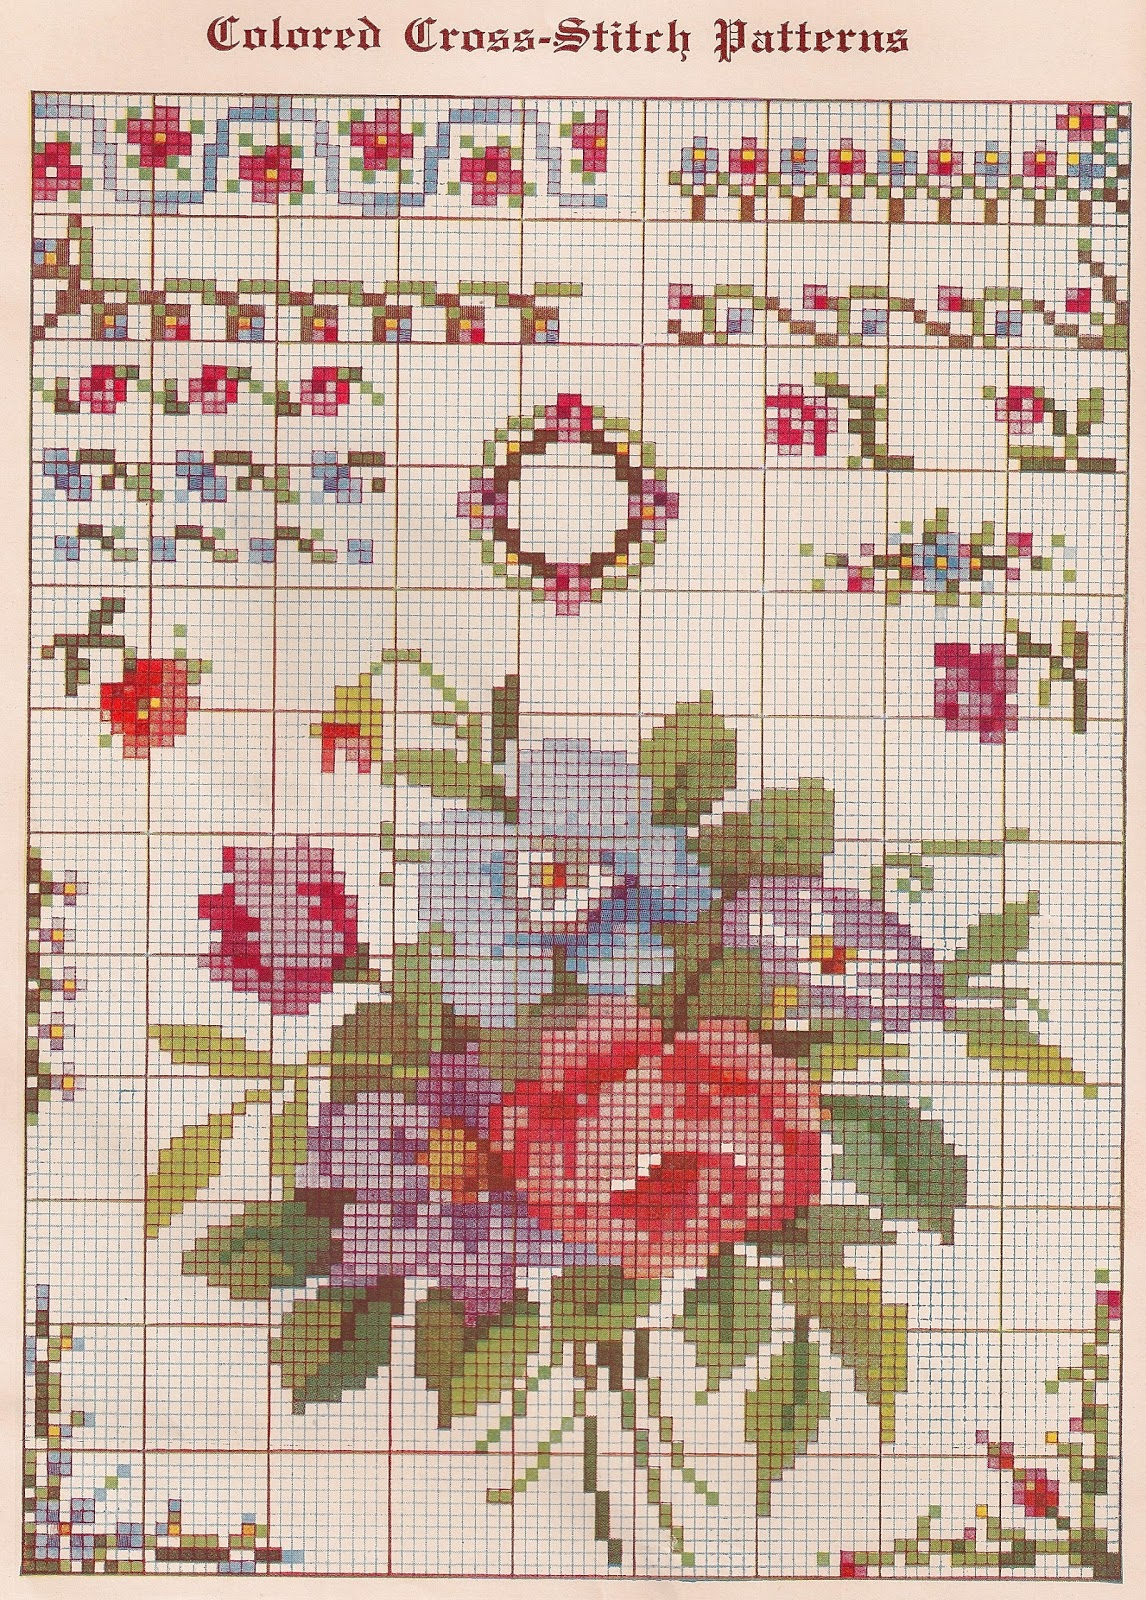 Bathroom Cross Stitch Patterns